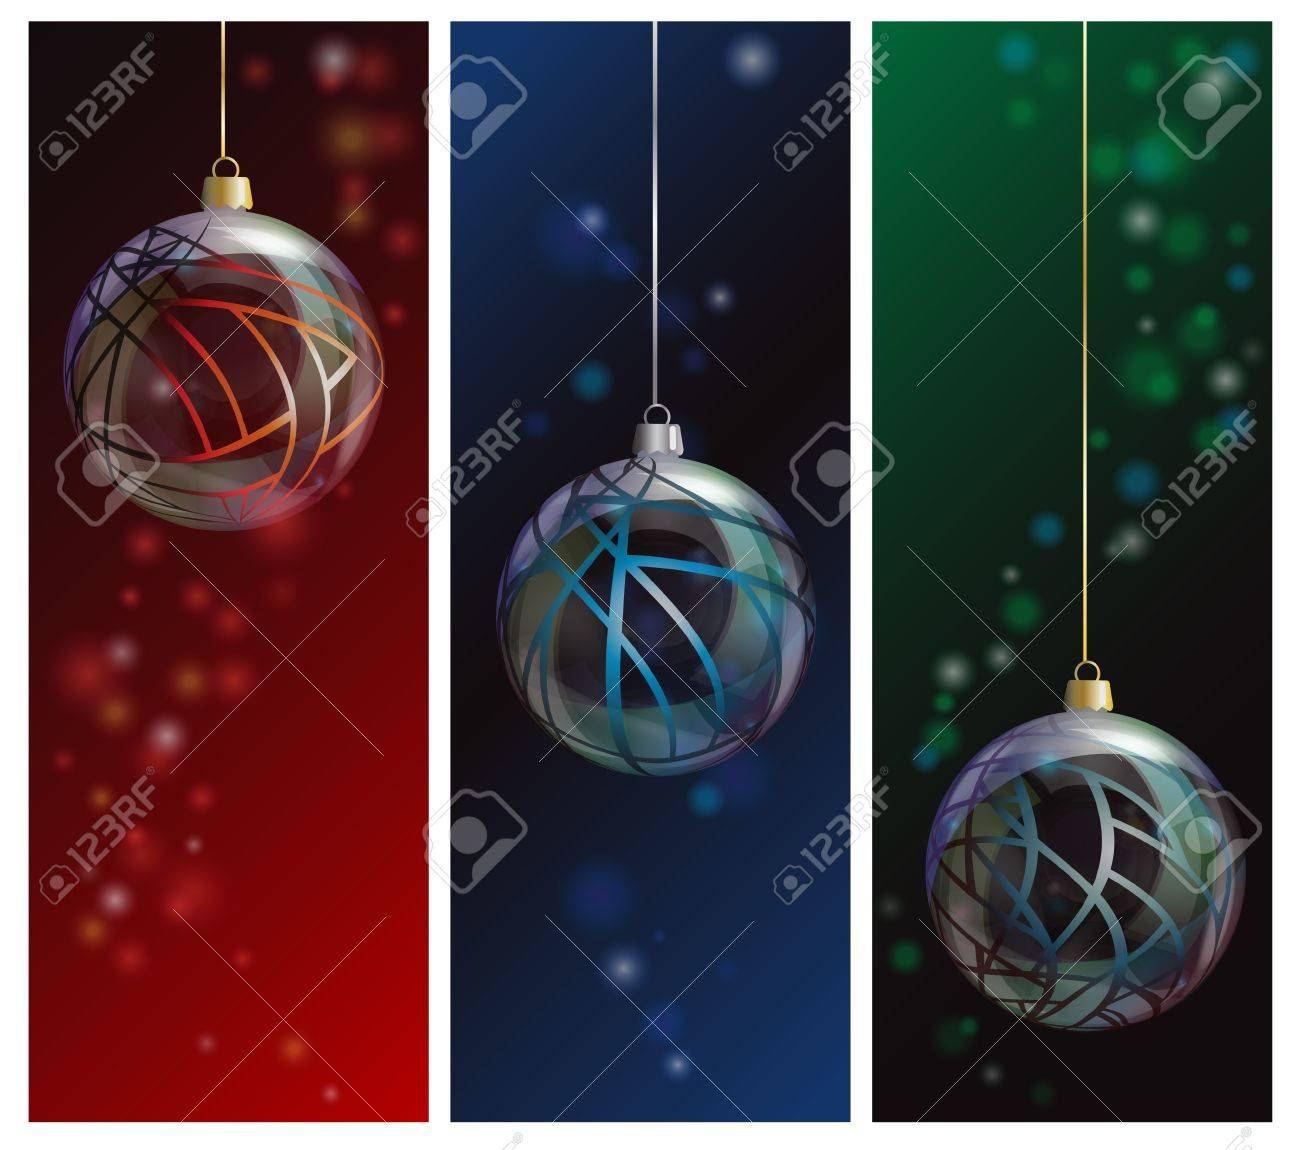 Three elegant glass Christmas bauble banners on bokeh backgrounds. EPS10 vector format. Stock Vector - 15649291